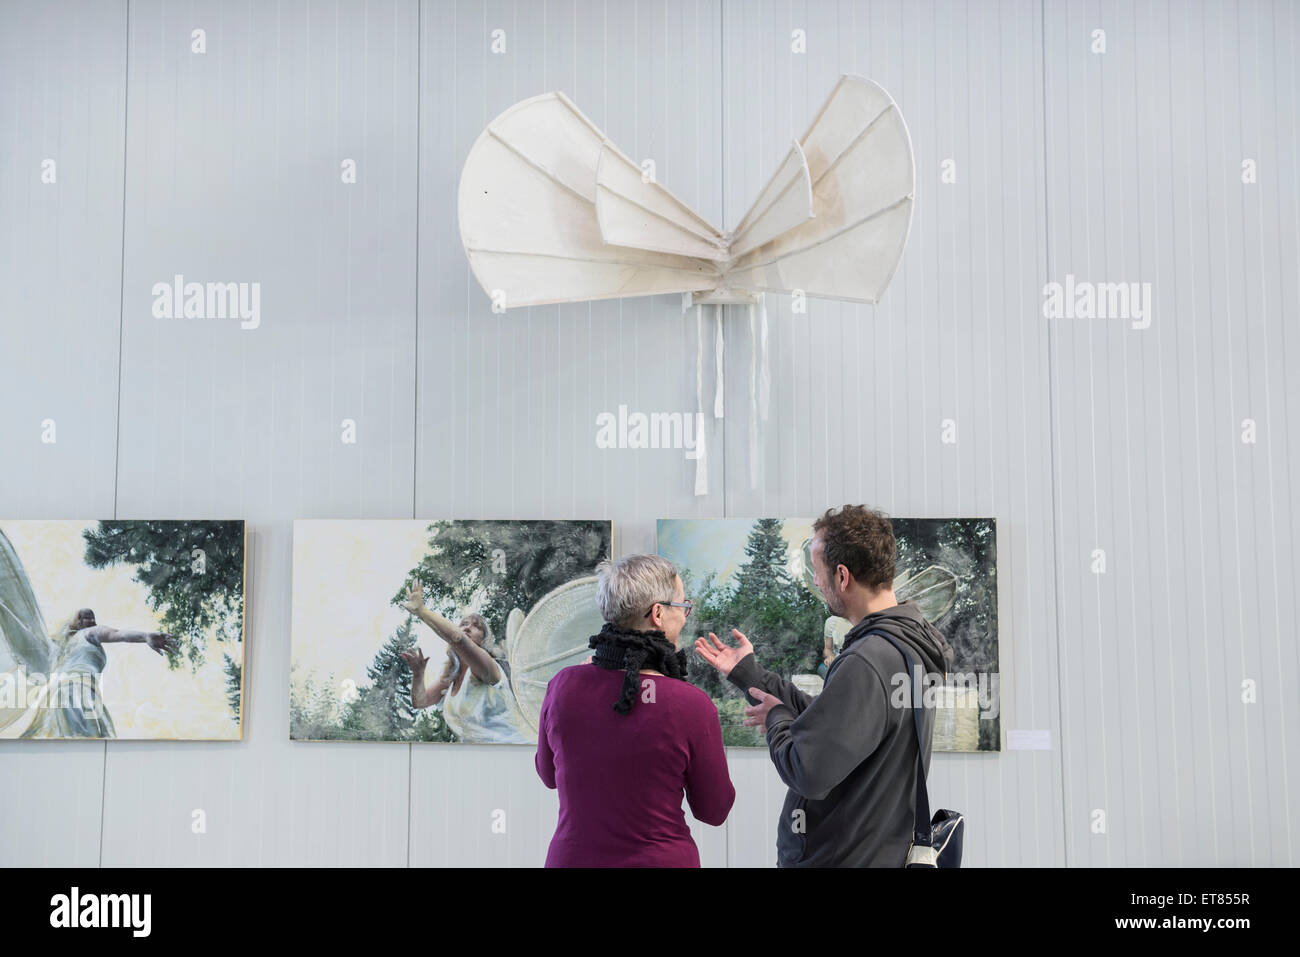 Visitors looking at paintings in an art gallery, Bavaria, Germany - Stock Image